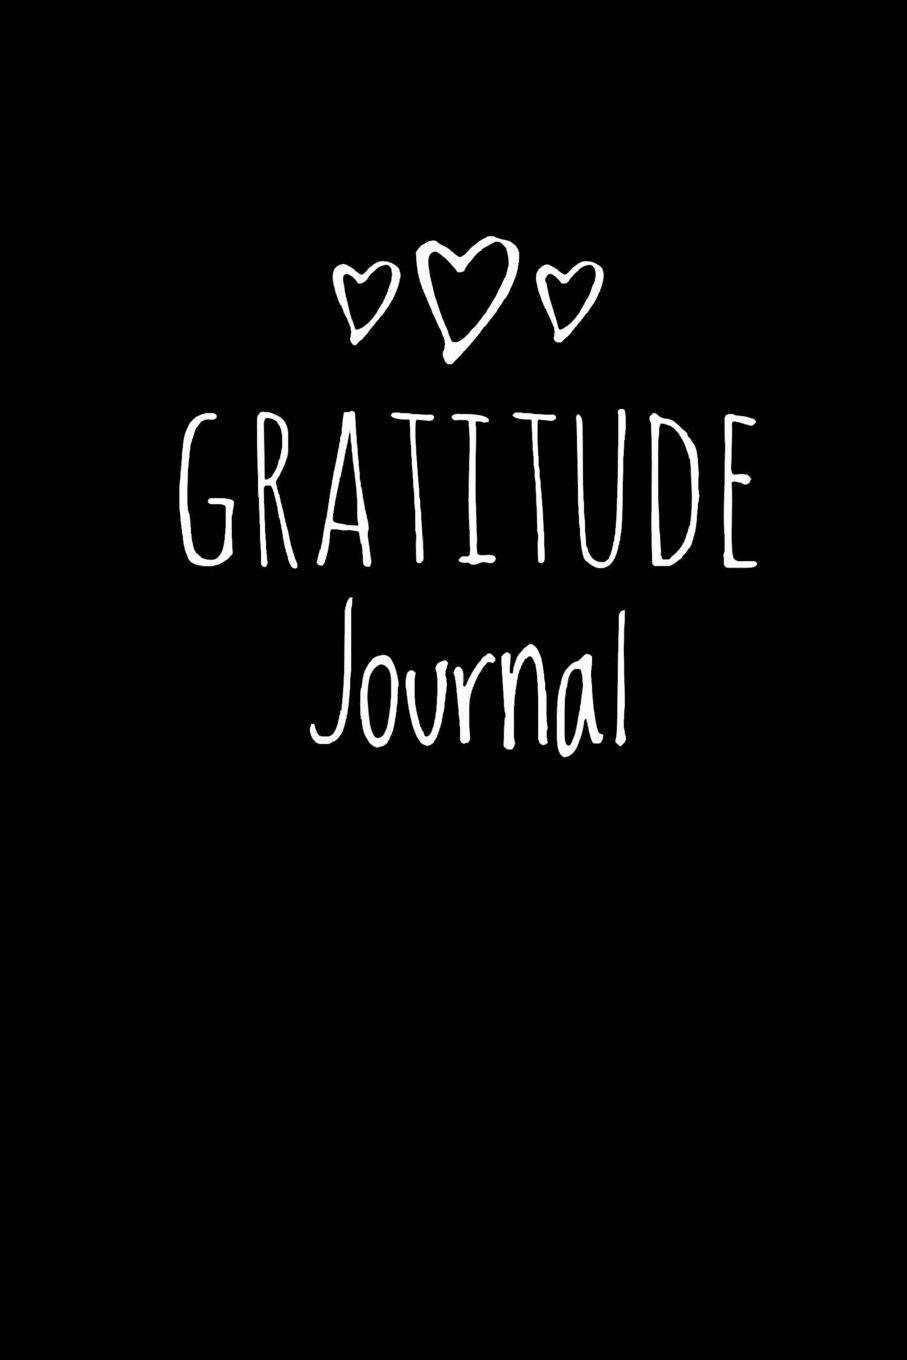 """Read Online Gratitude Journal: Personalized gratitude journal, 102 Pages,6"""" x 9"""" (15.24 x 22.86 cm),Durable Soft Cover,Book for mindfulness reflection ... care gift or for him or her (Black Cover) ebook"""